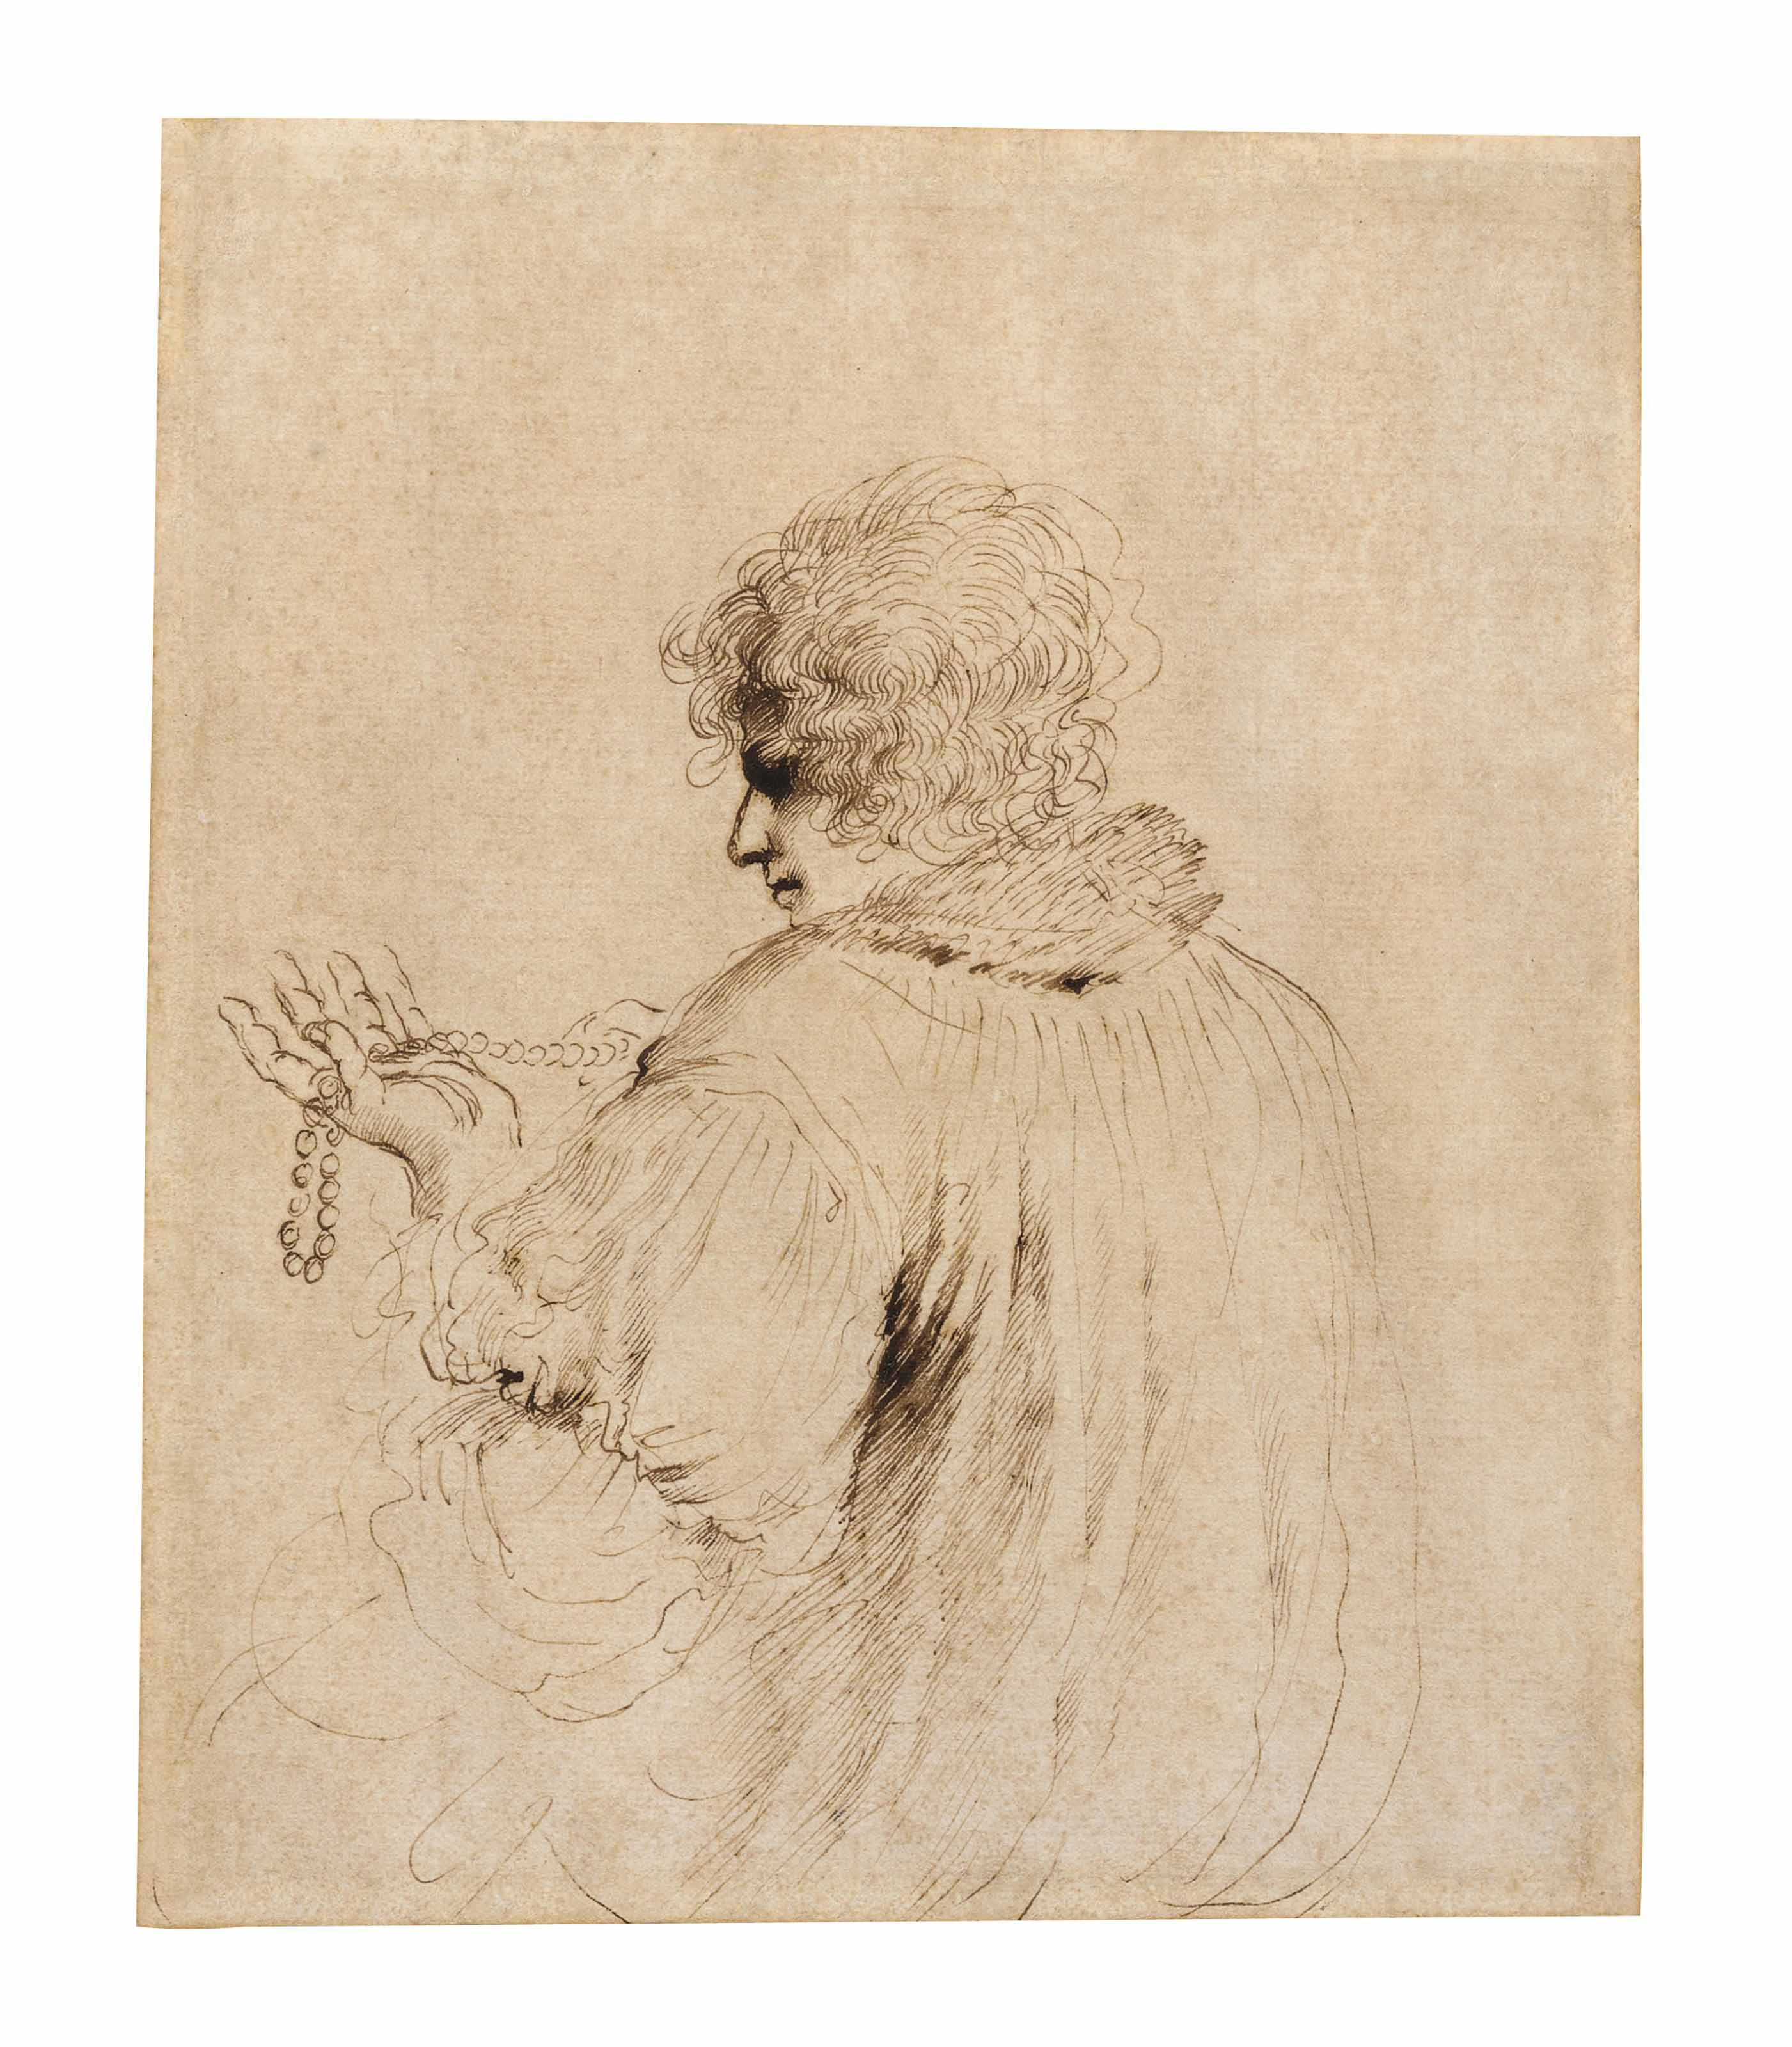 https://www.christies.com/img/LotImages/2012/NYR/2012_NYR_02535_0071_000(giovanni_francesco_barbieri_il_guercino_a_man_holding_a_string_of_bead).jpg